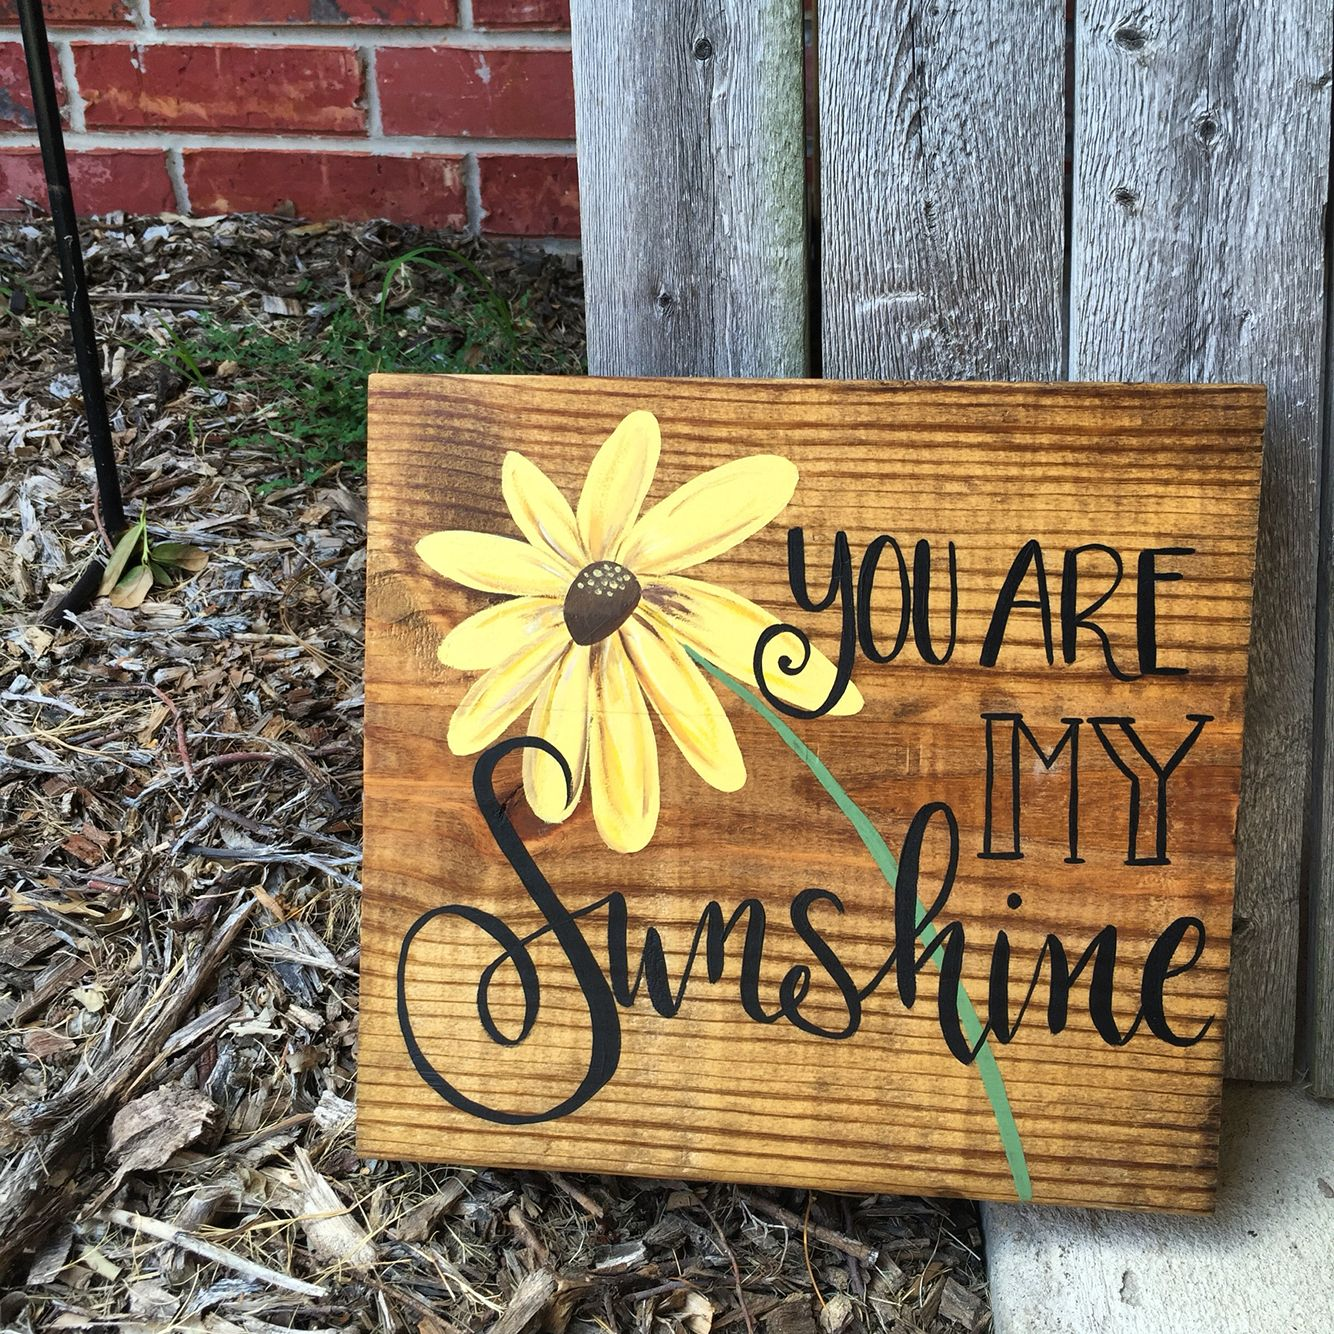 You Are My Sunshine Hand Painted Wooden Sign By Wood B So Kind For Wyatt And Do Sheep Ba Black Christopher